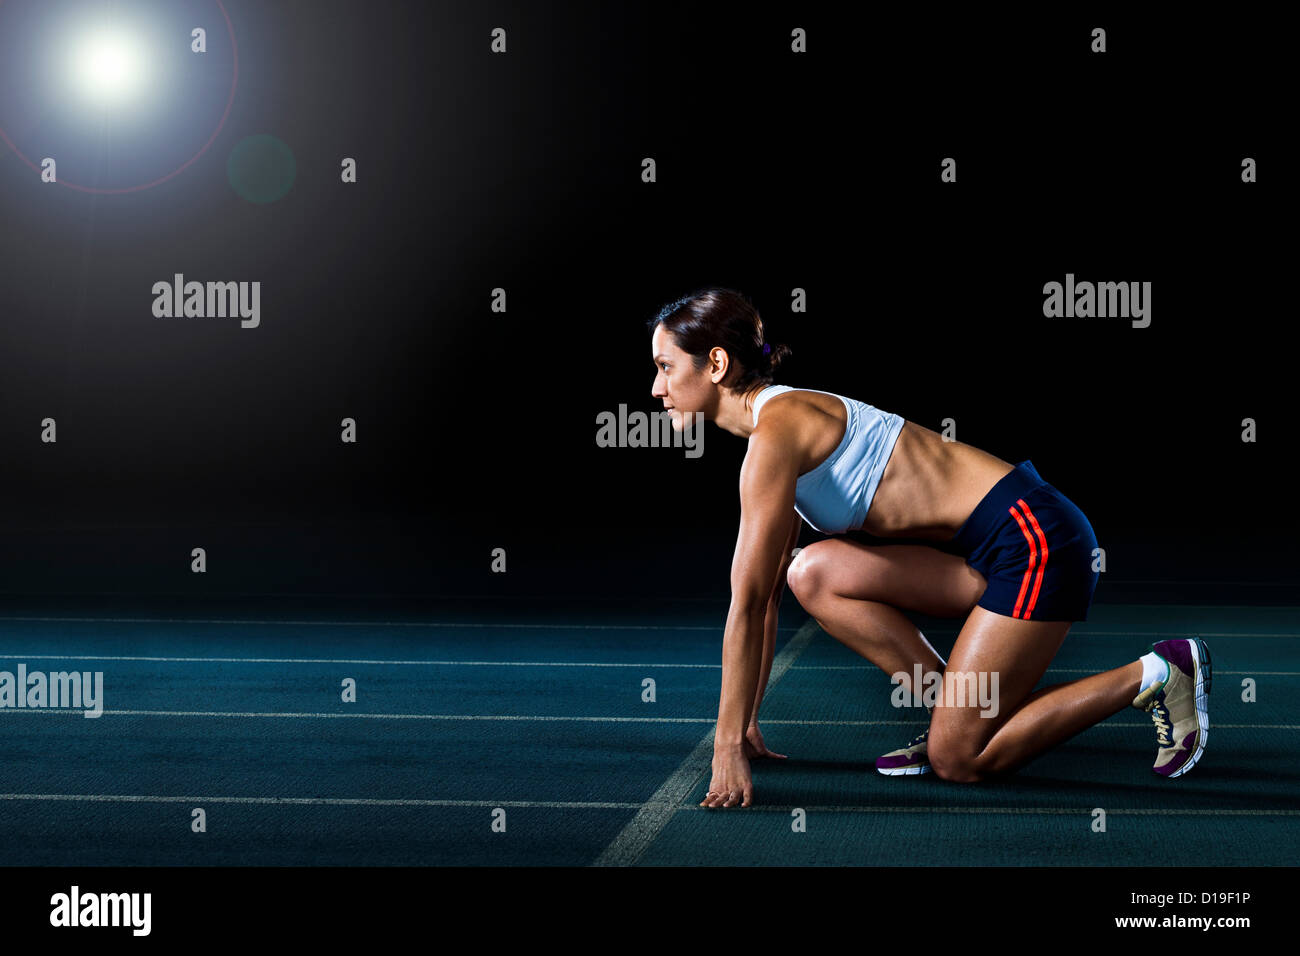 running position stock photos running position stock images alamy